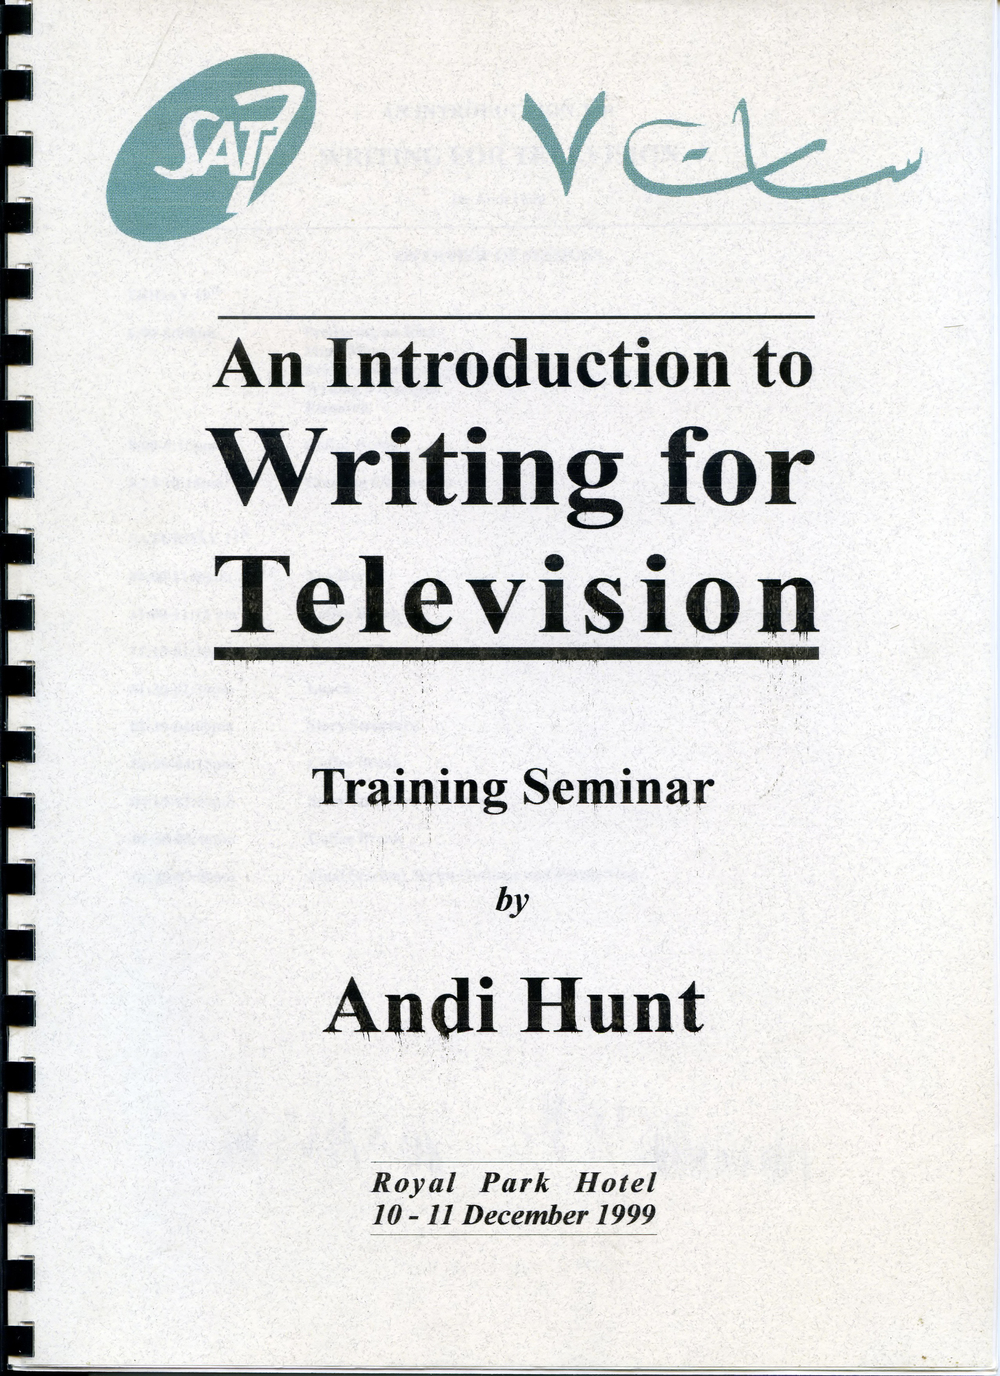 The manual for the writing seminar